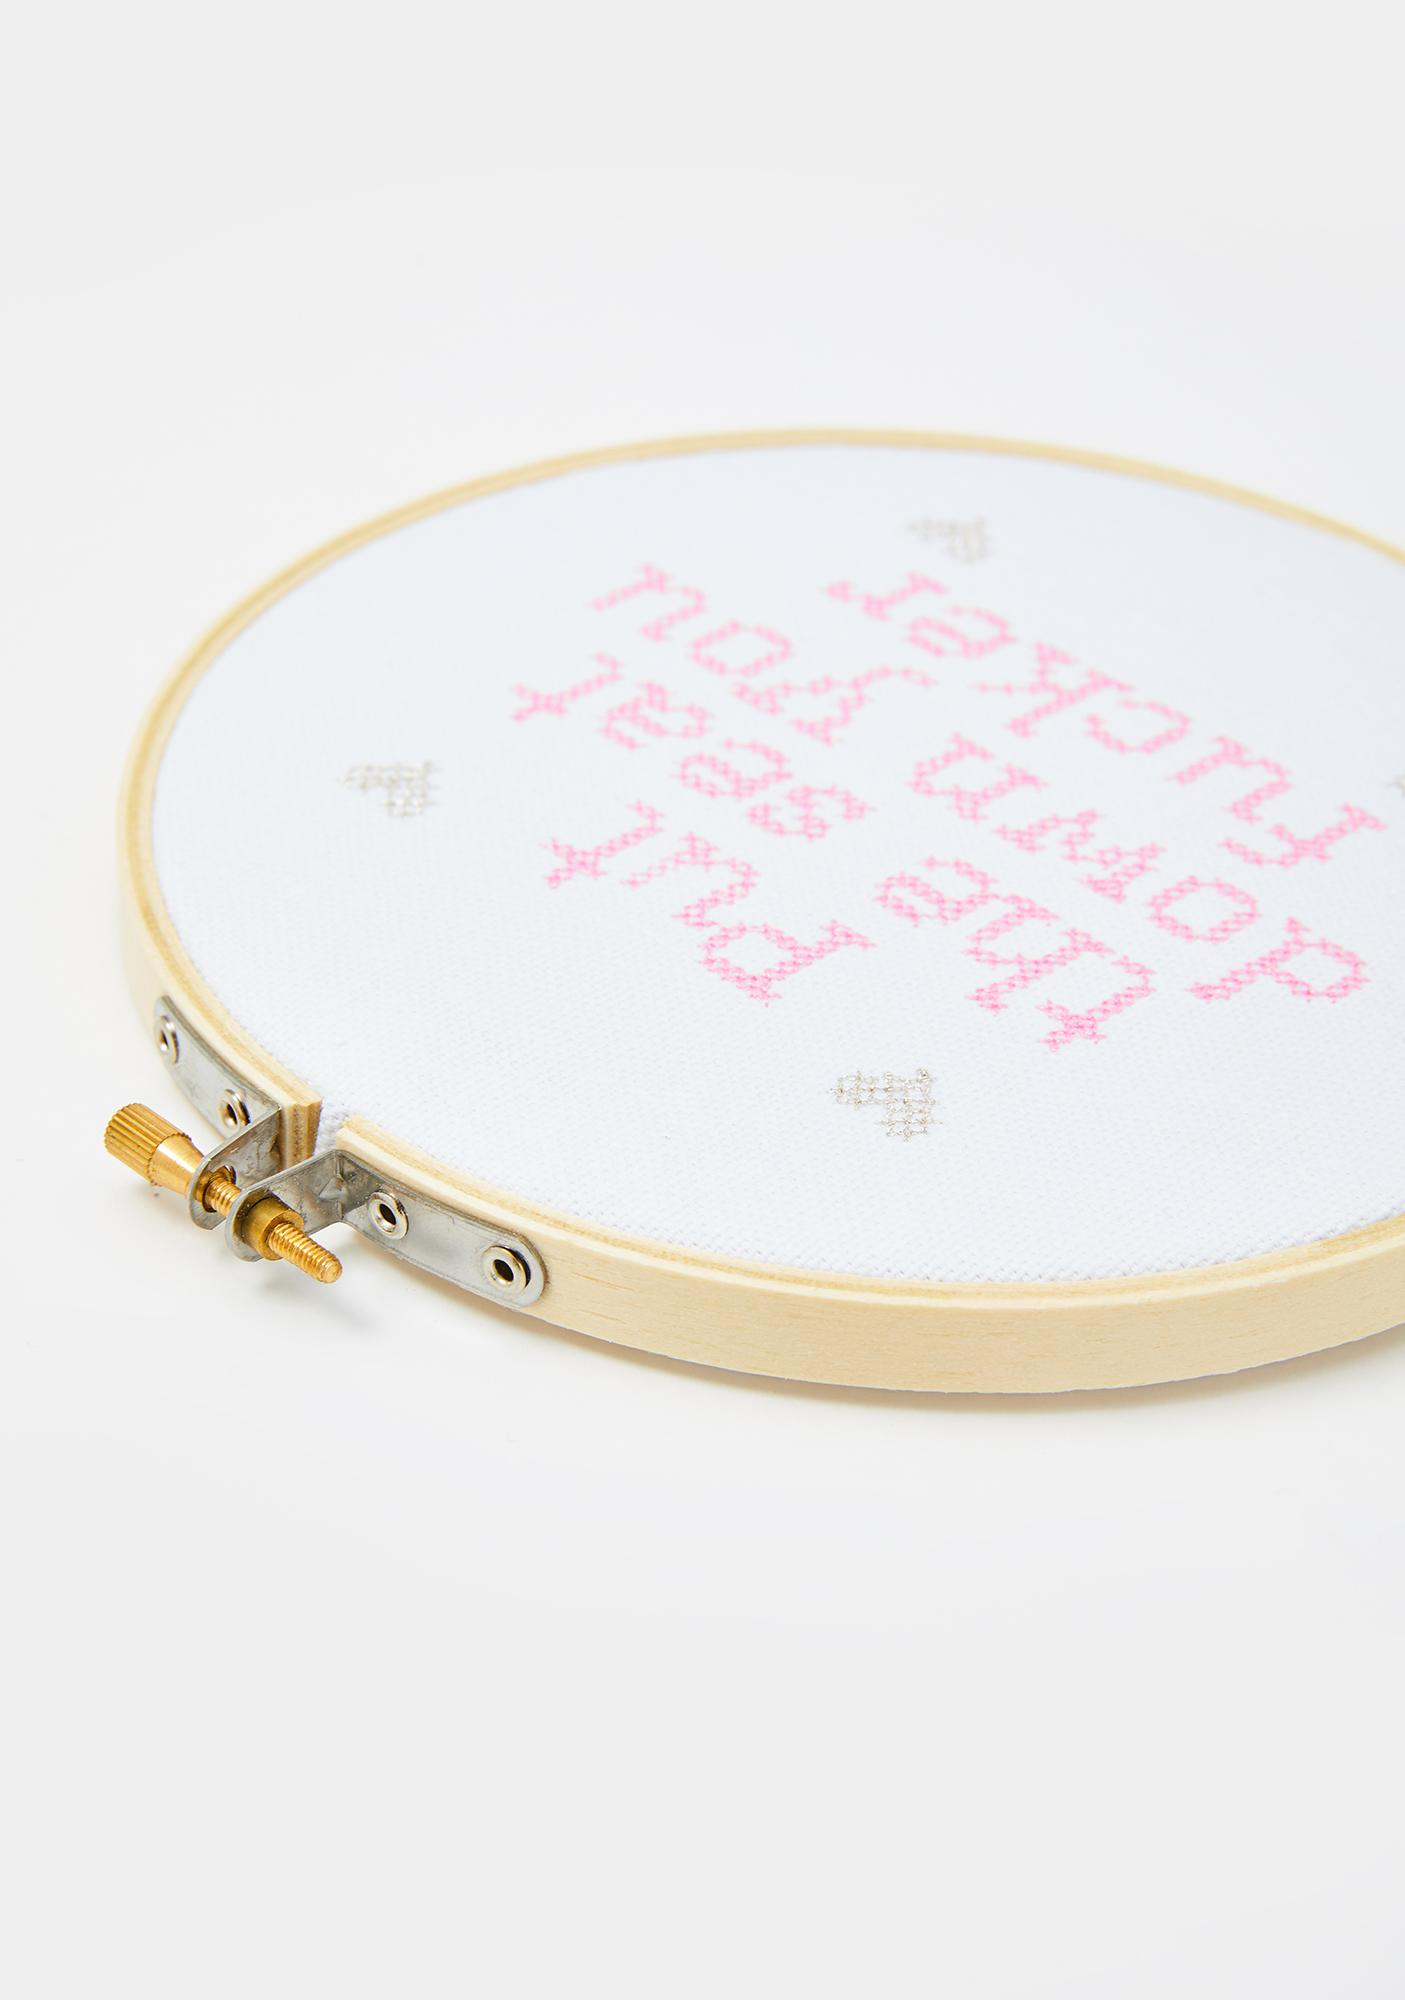 A Shop of Things Put The Seat Down Cross Stitch